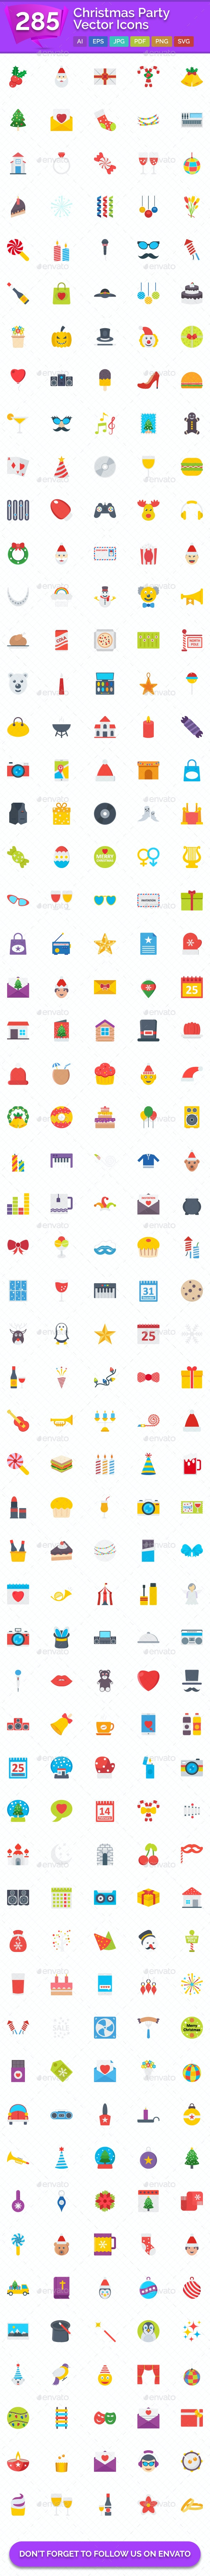 285 Christmas Party Vector Icons - Icons